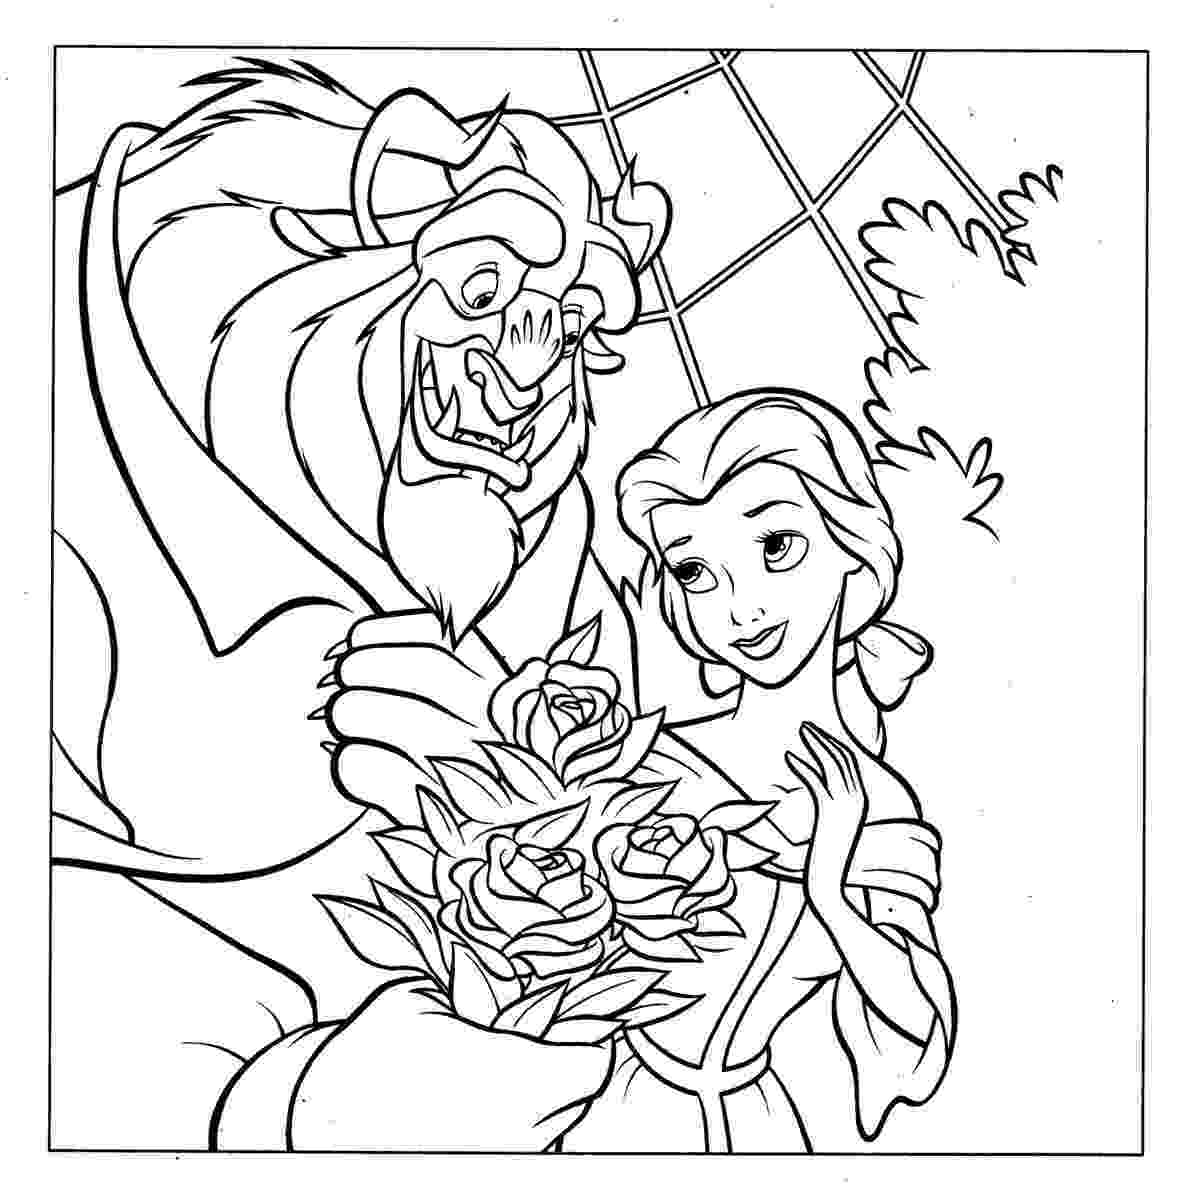 beauty and the beast coloring pages beauty and the beast belle coloring pages download kids beast and beauty pages coloring the